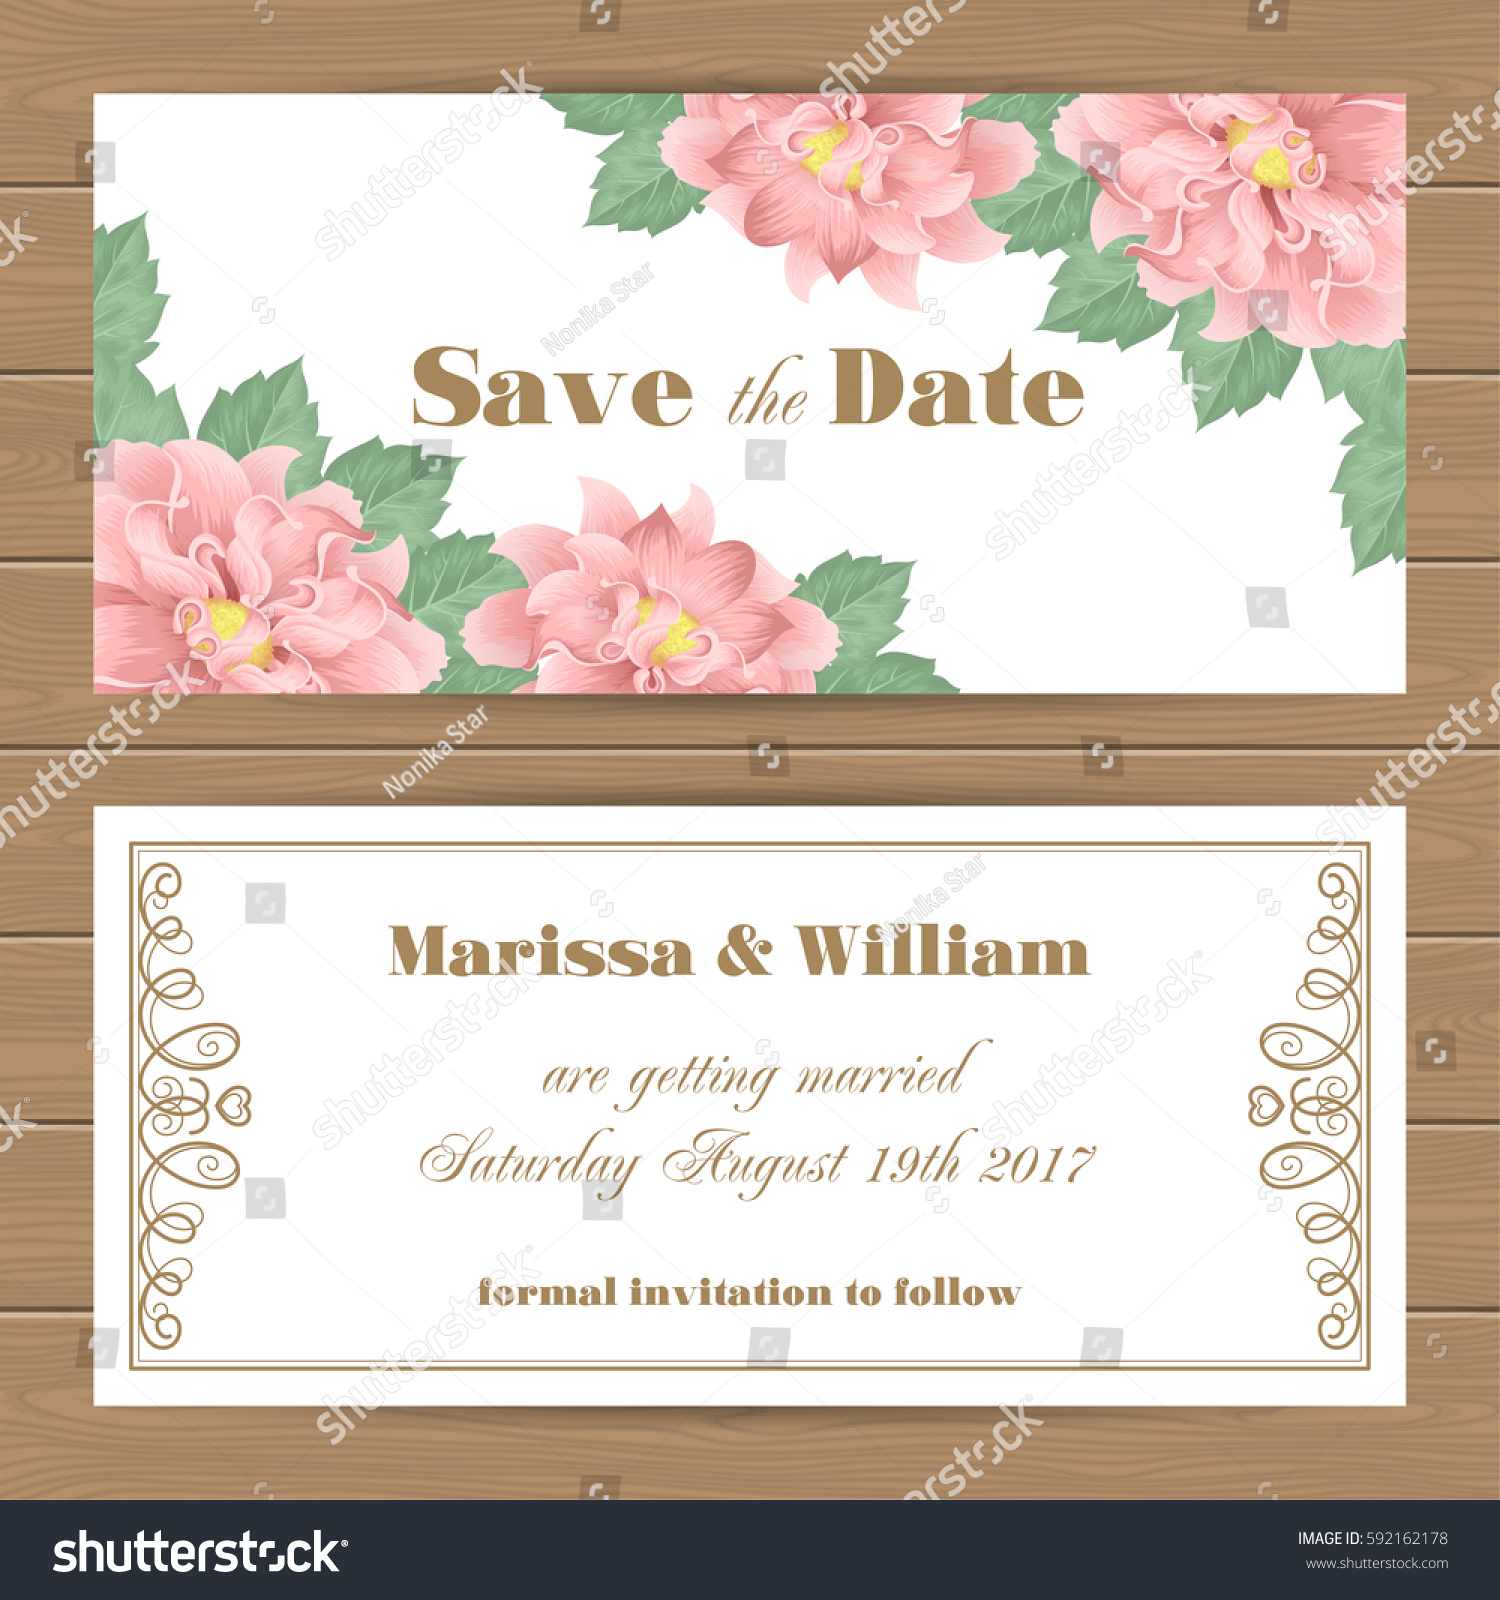 save date card wedding invitation template stock vector 592162178 shutterstock. Black Bedroom Furniture Sets. Home Design Ideas